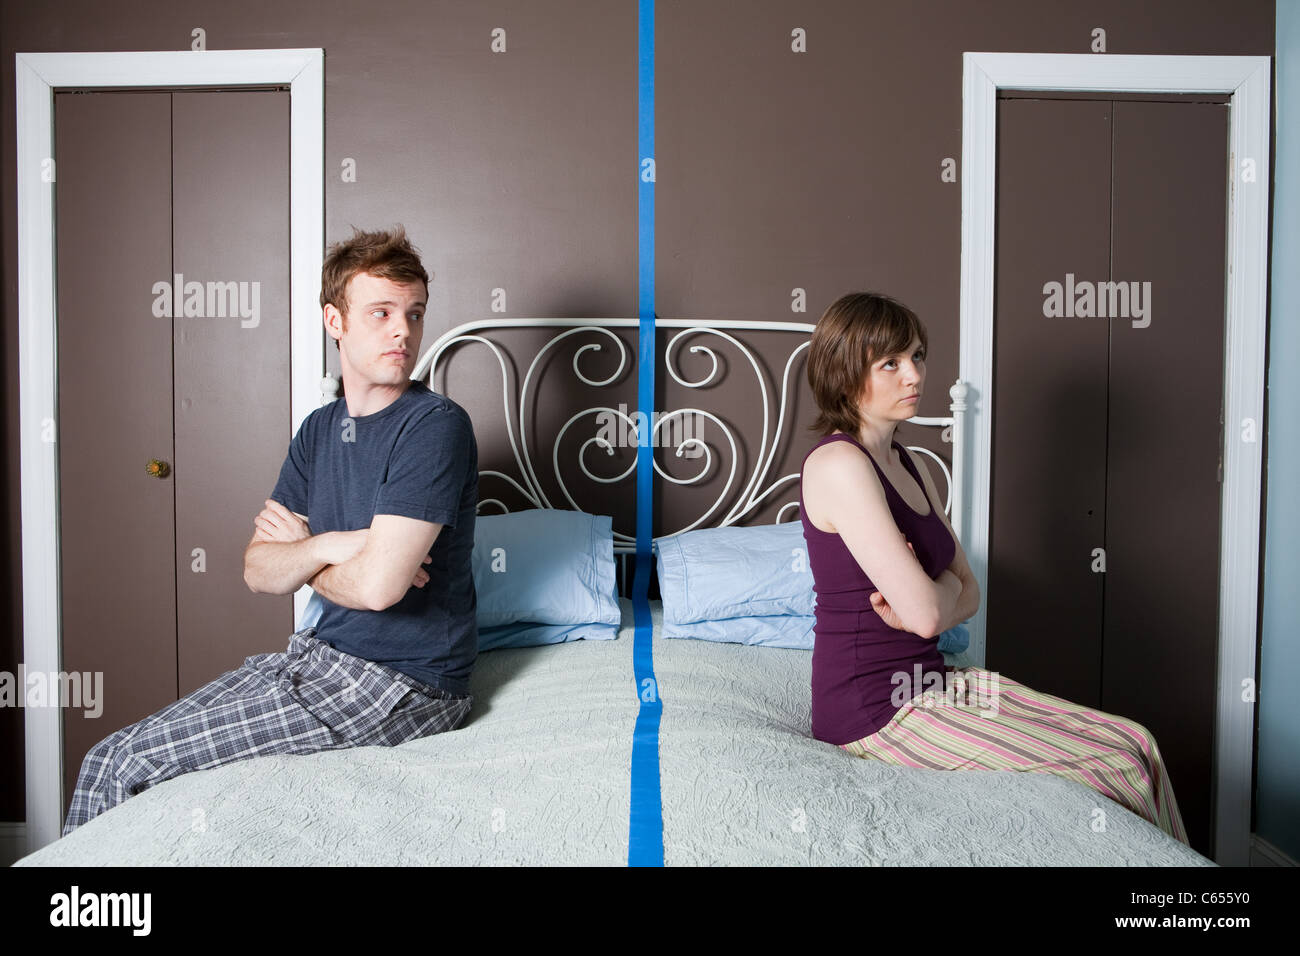 Young couple sitting on bed separated by blue line - Stock Image